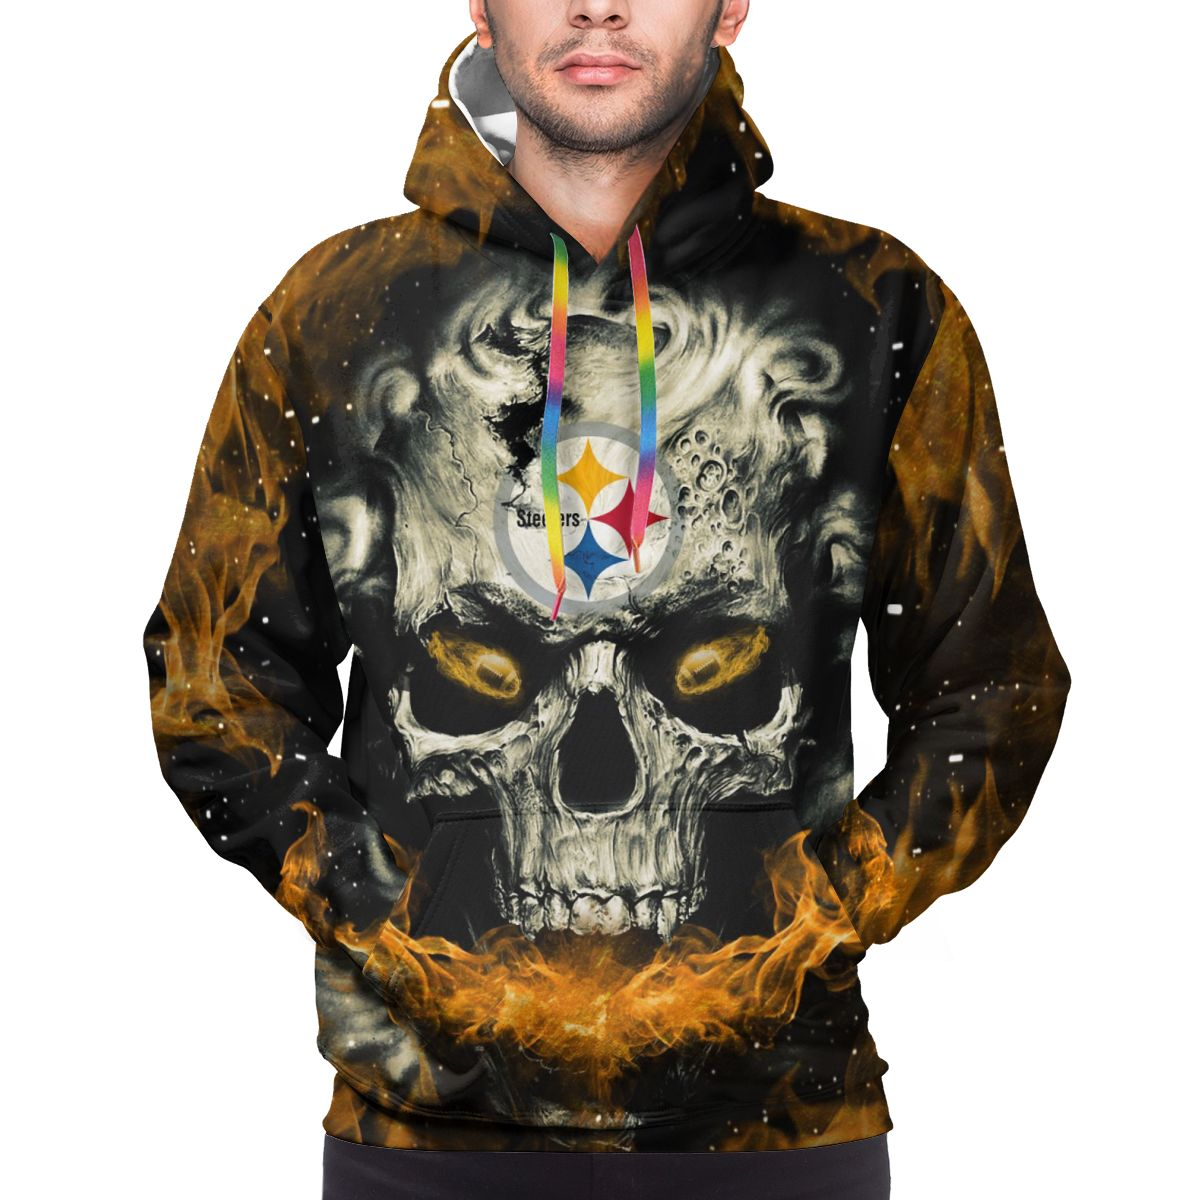 3D Skull Steelers Logo Print Hoodies For Men Pullover Sweatshirt